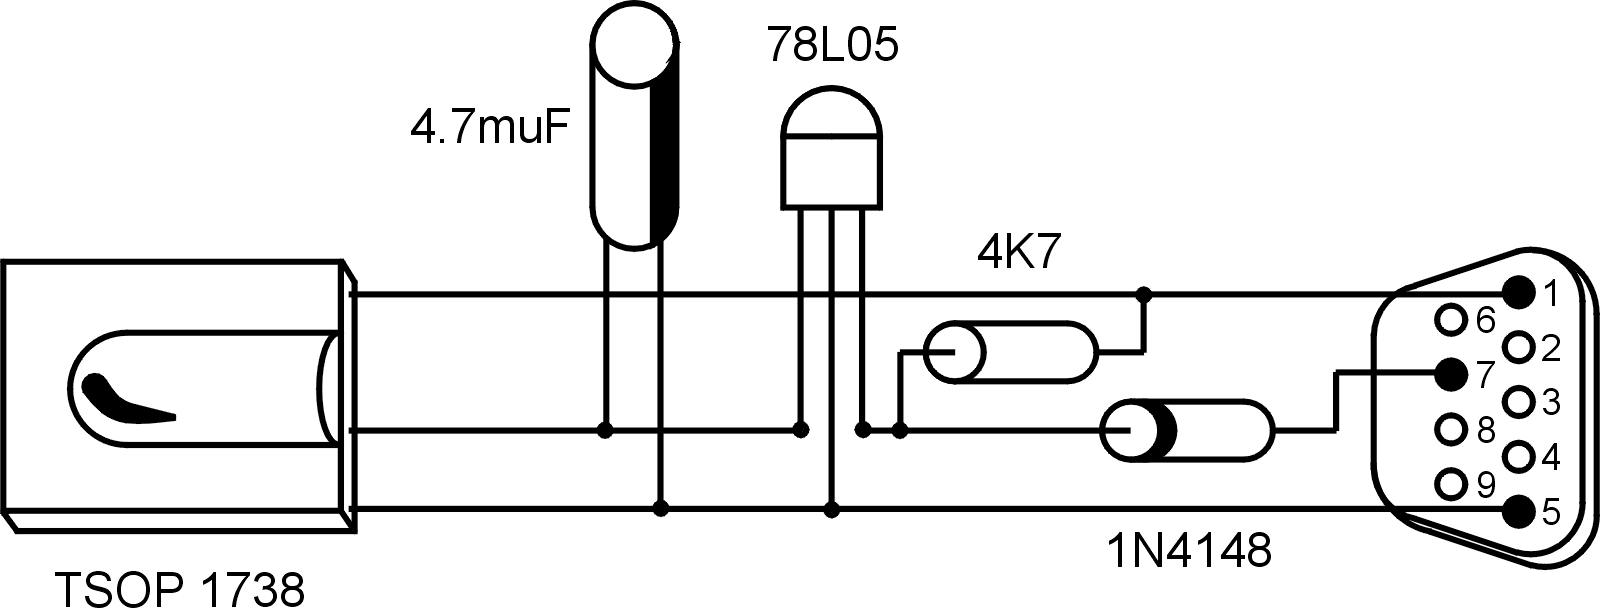 hight resolution of component view of the circuit